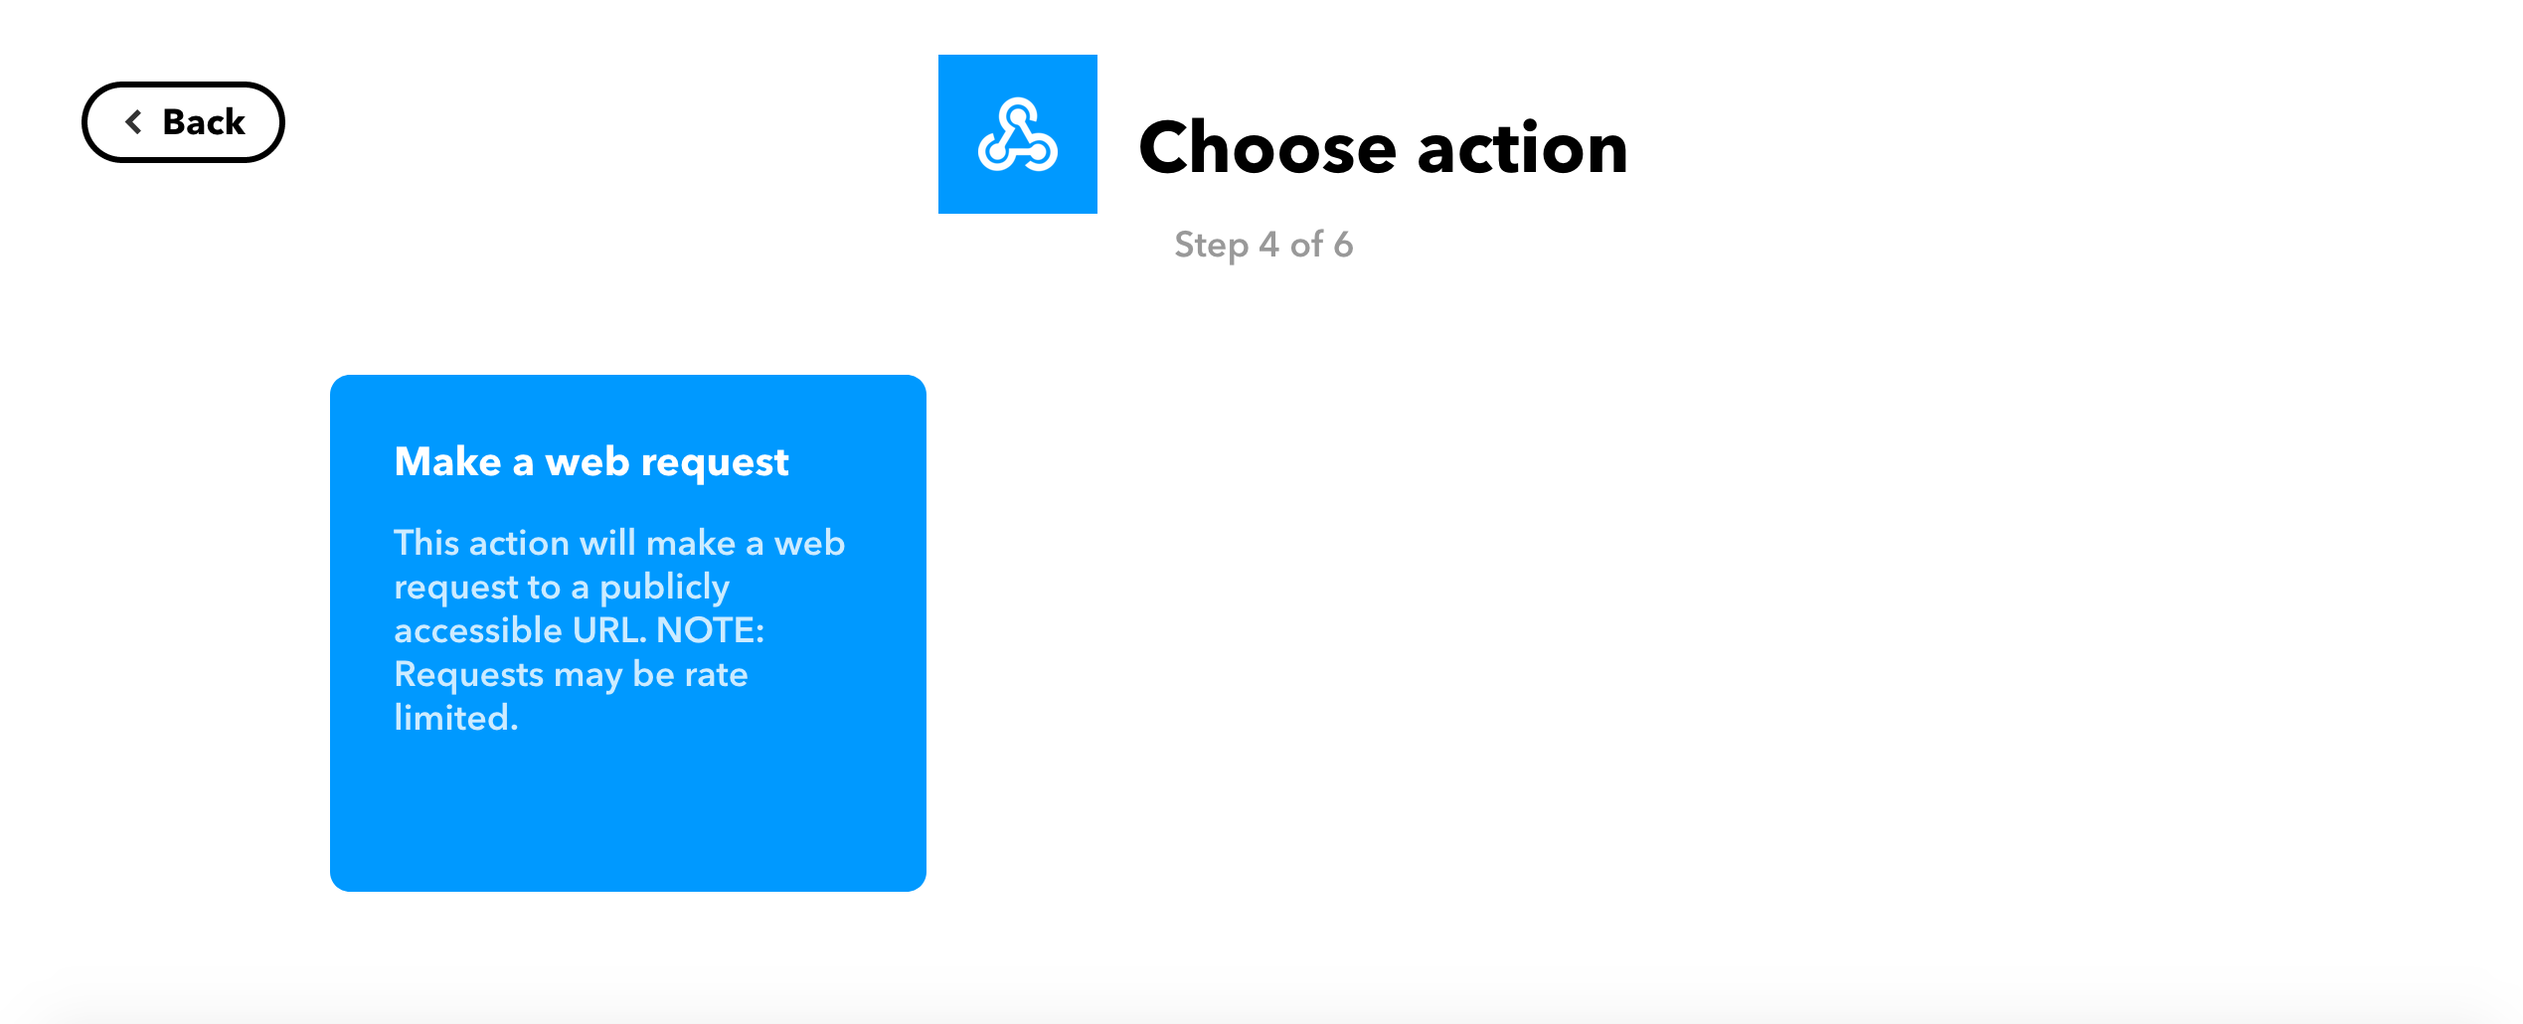 Blynk App and IFTTT